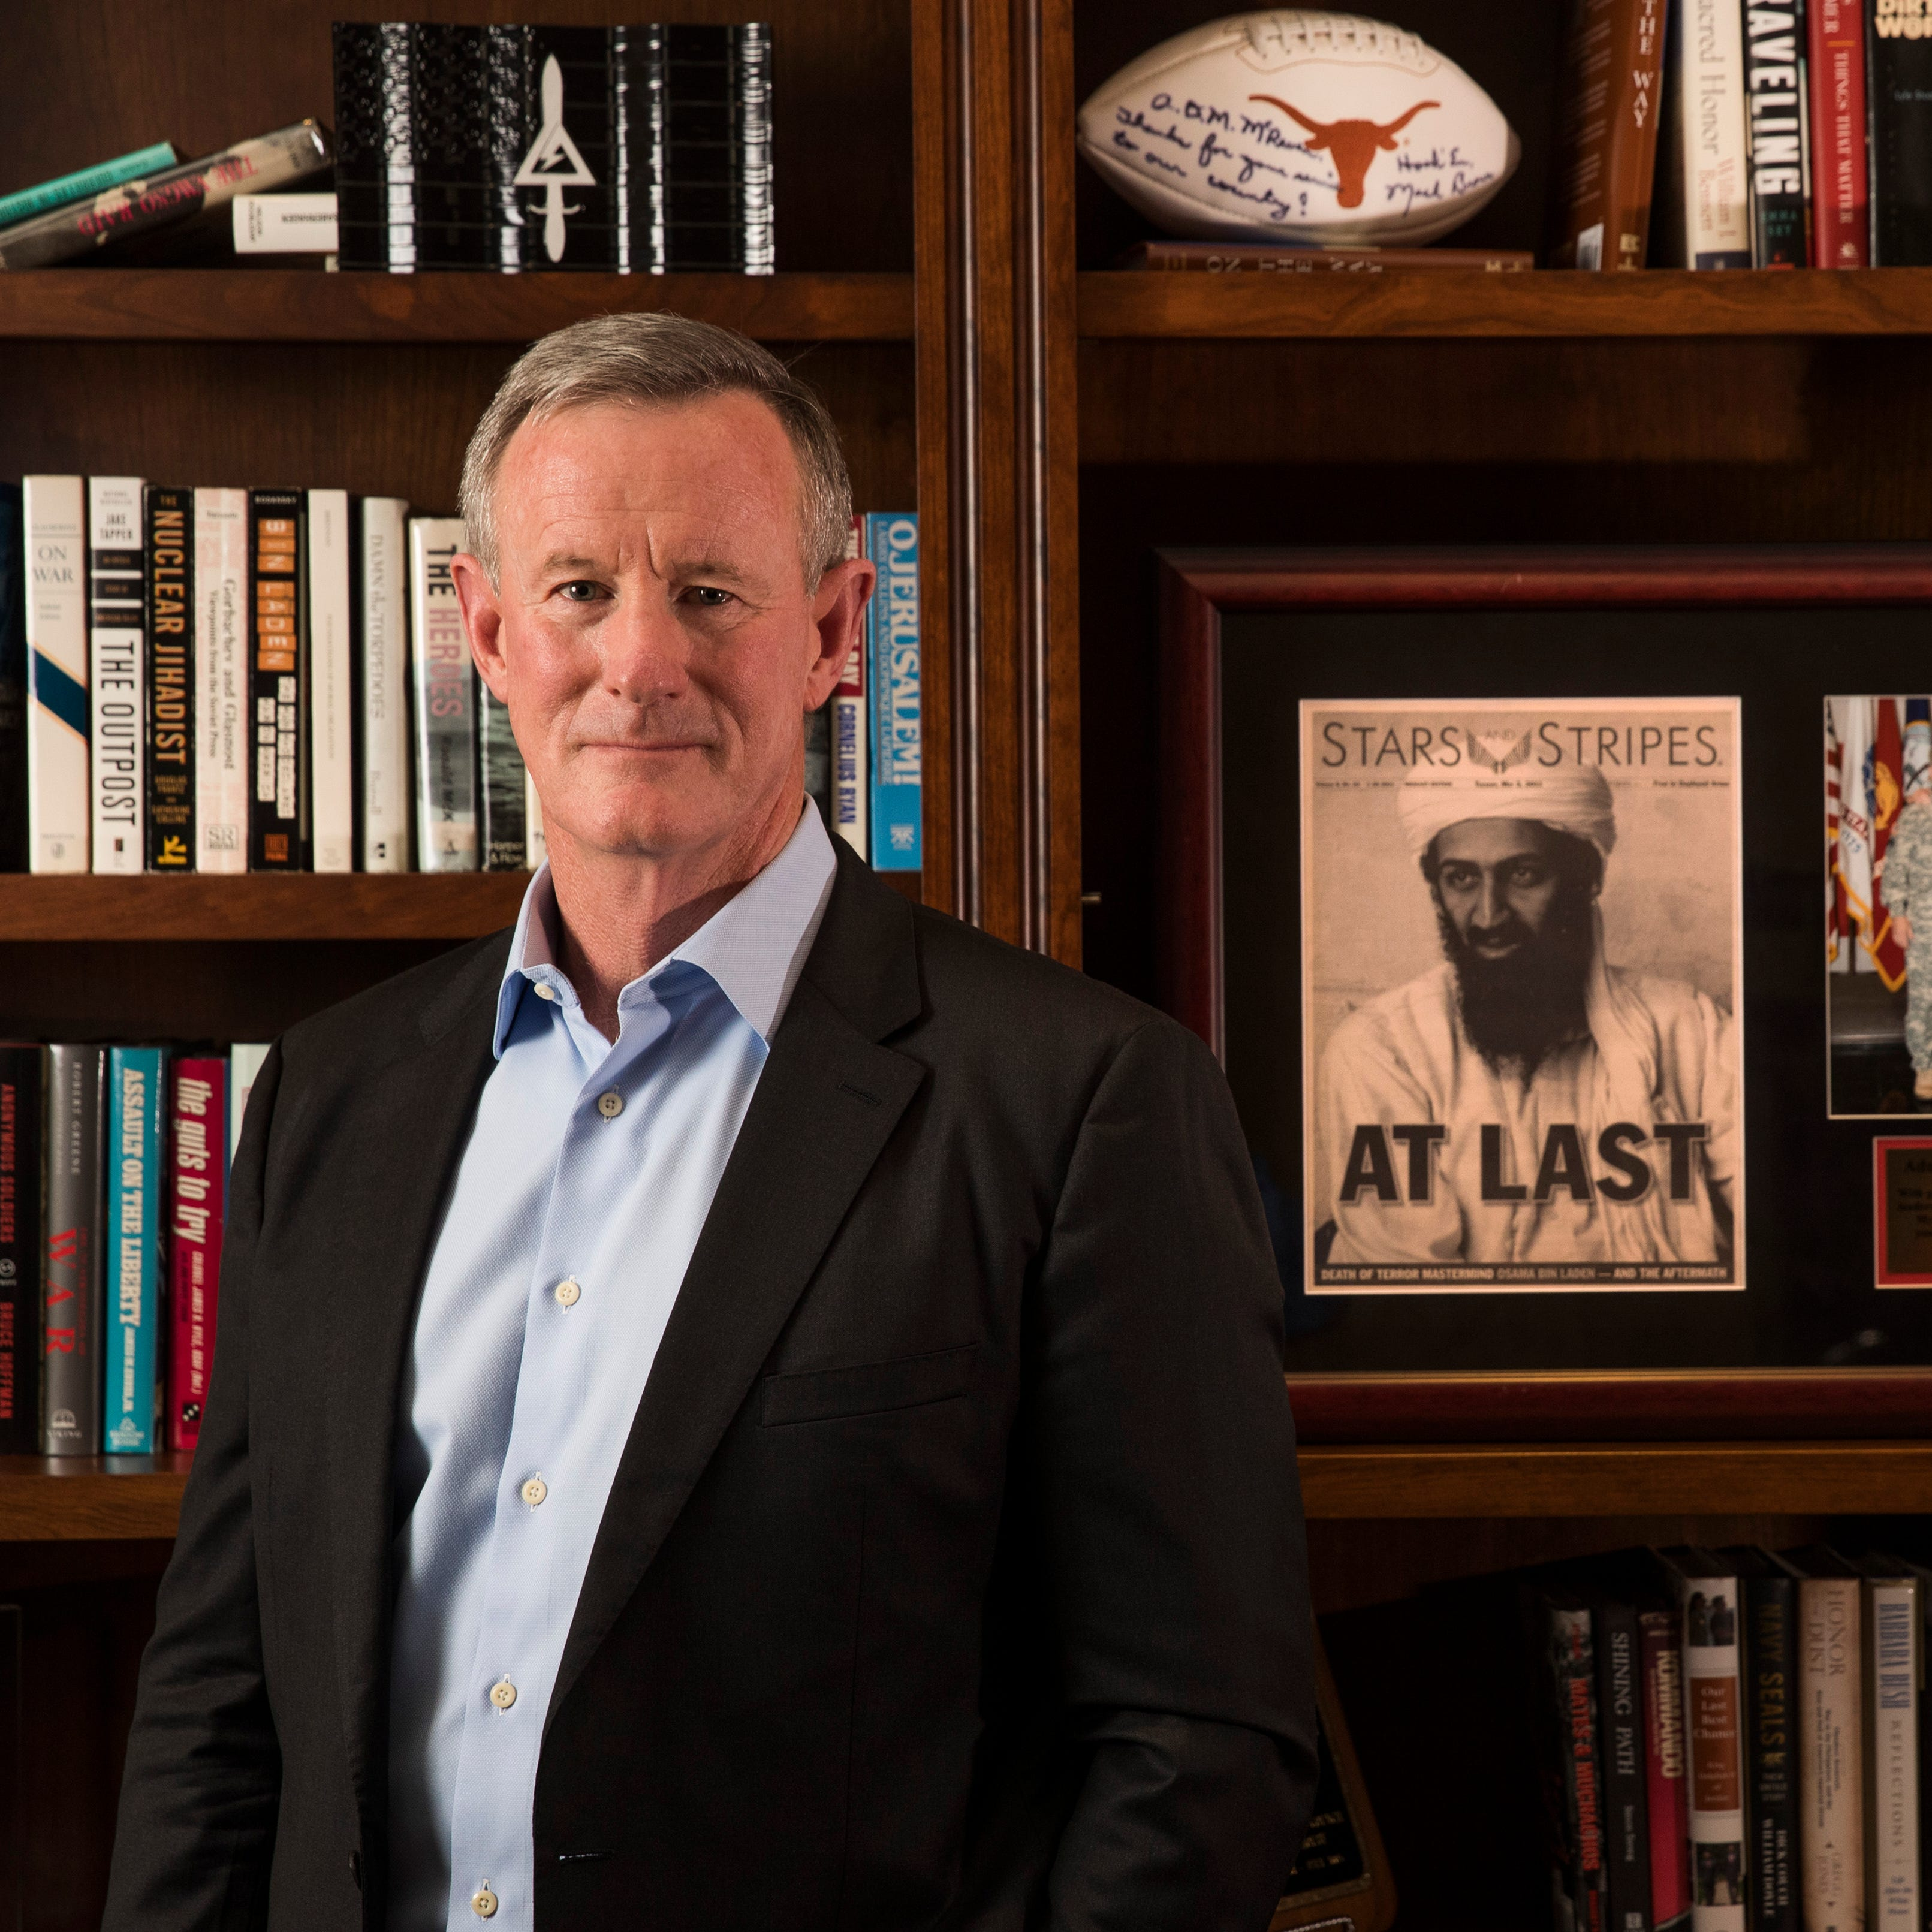 William H. McRaven, a retired Navy admiral, was commander of the U.S. Joint Special Operations Command from 2011 to 2014.